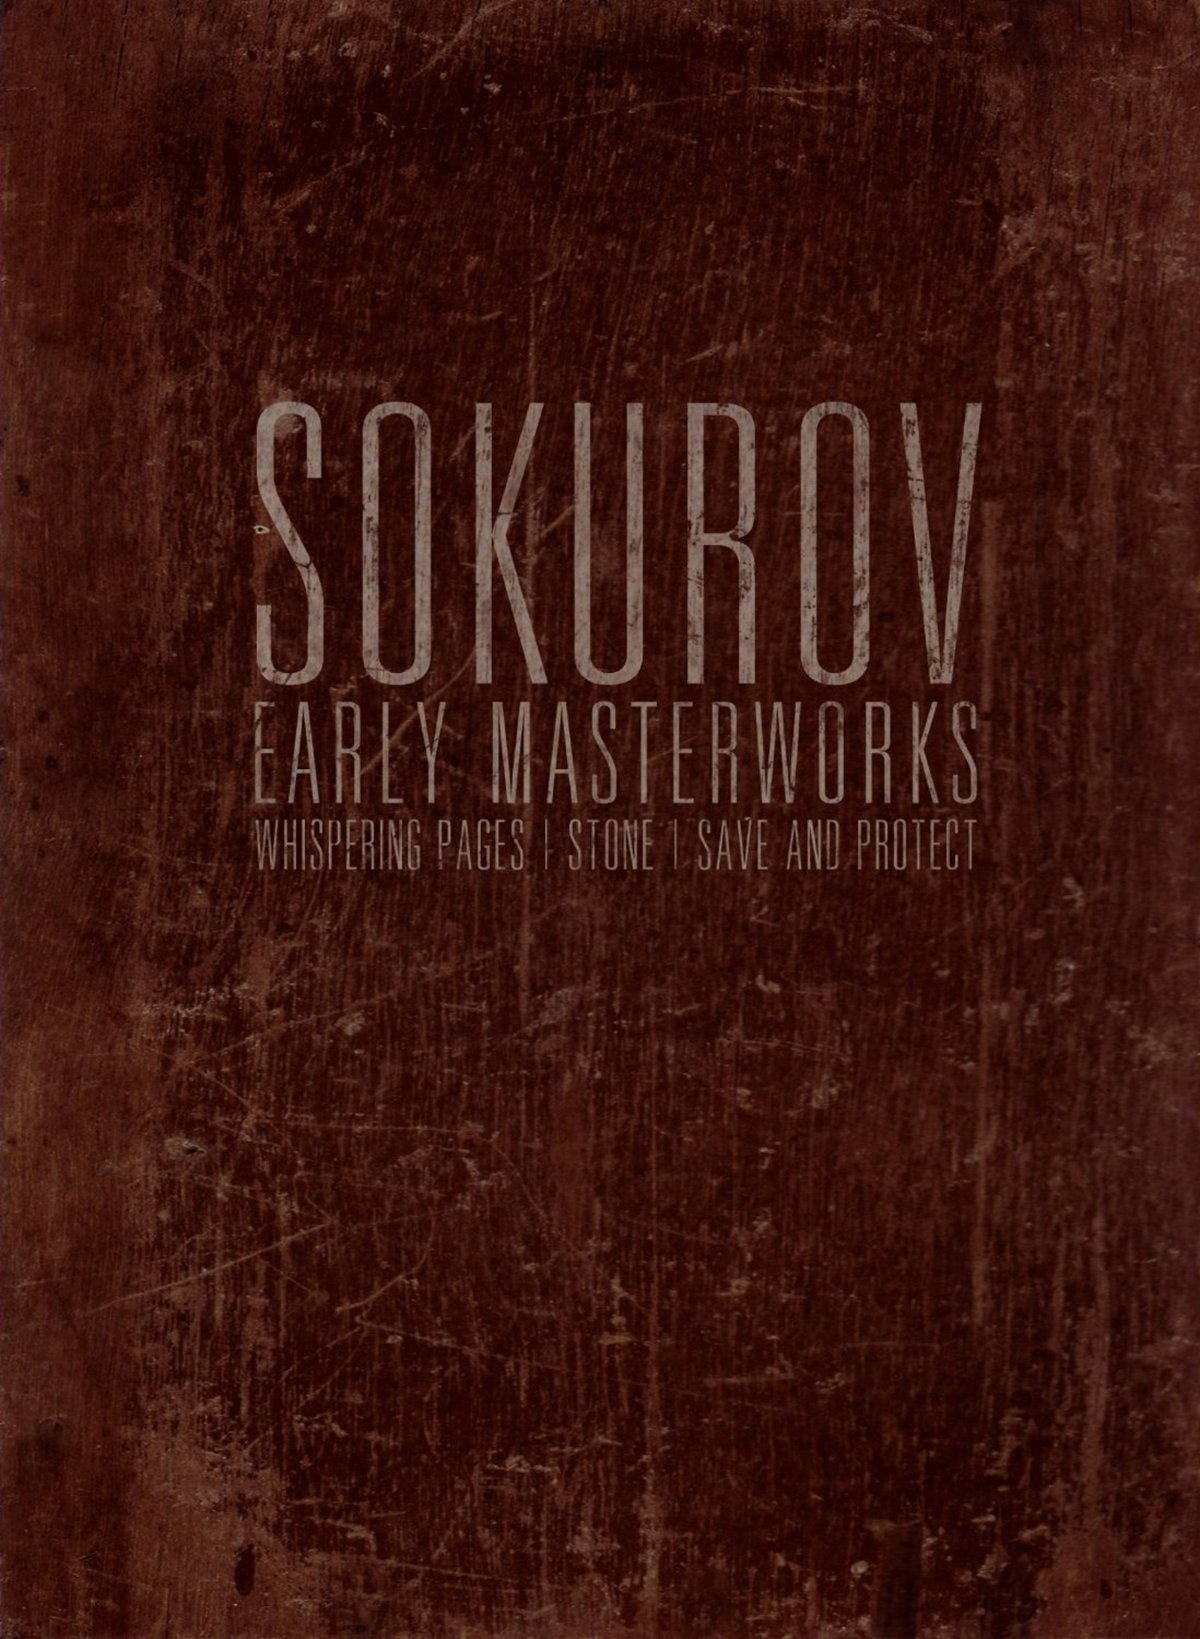 Sokurov: Early Masterworks